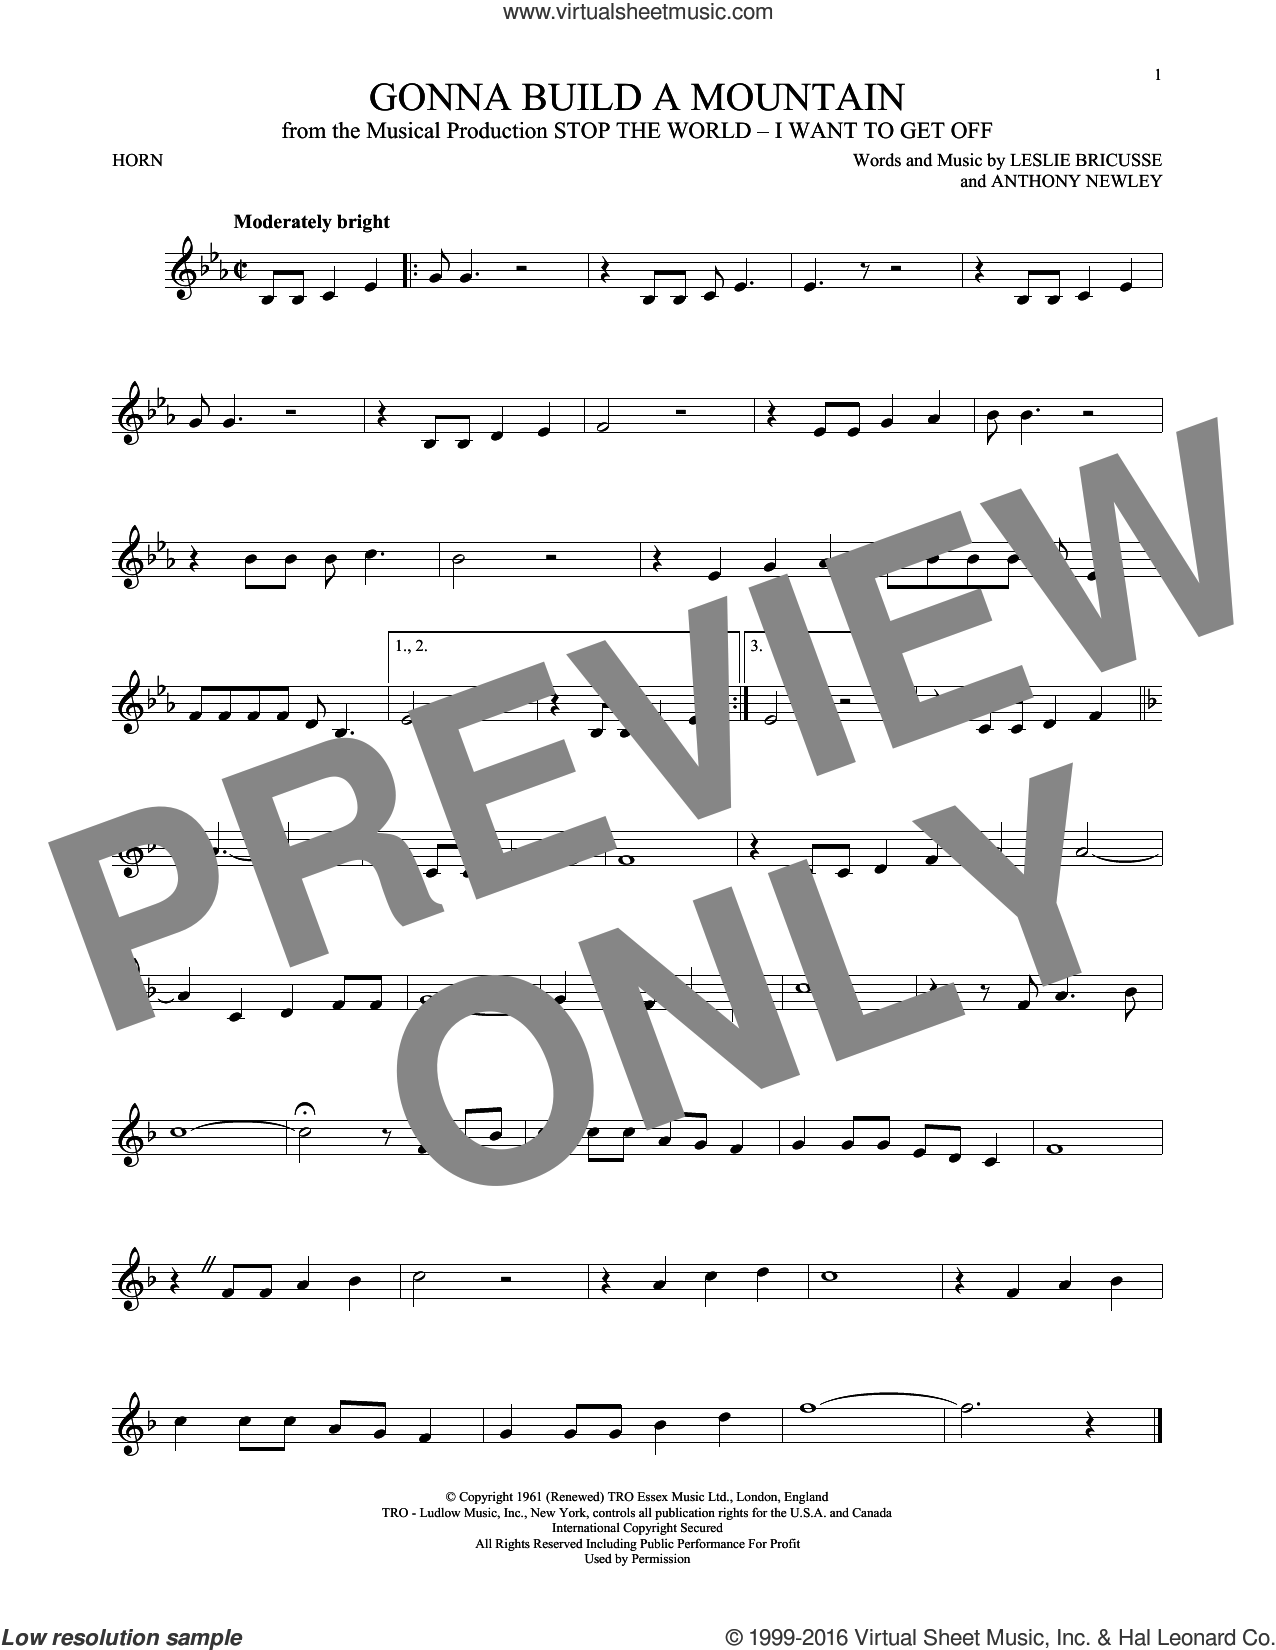 Gonna Build A Mountain sheet music for horn solo by Leslie Bricusse and Anthony Newley, intermediate skill level